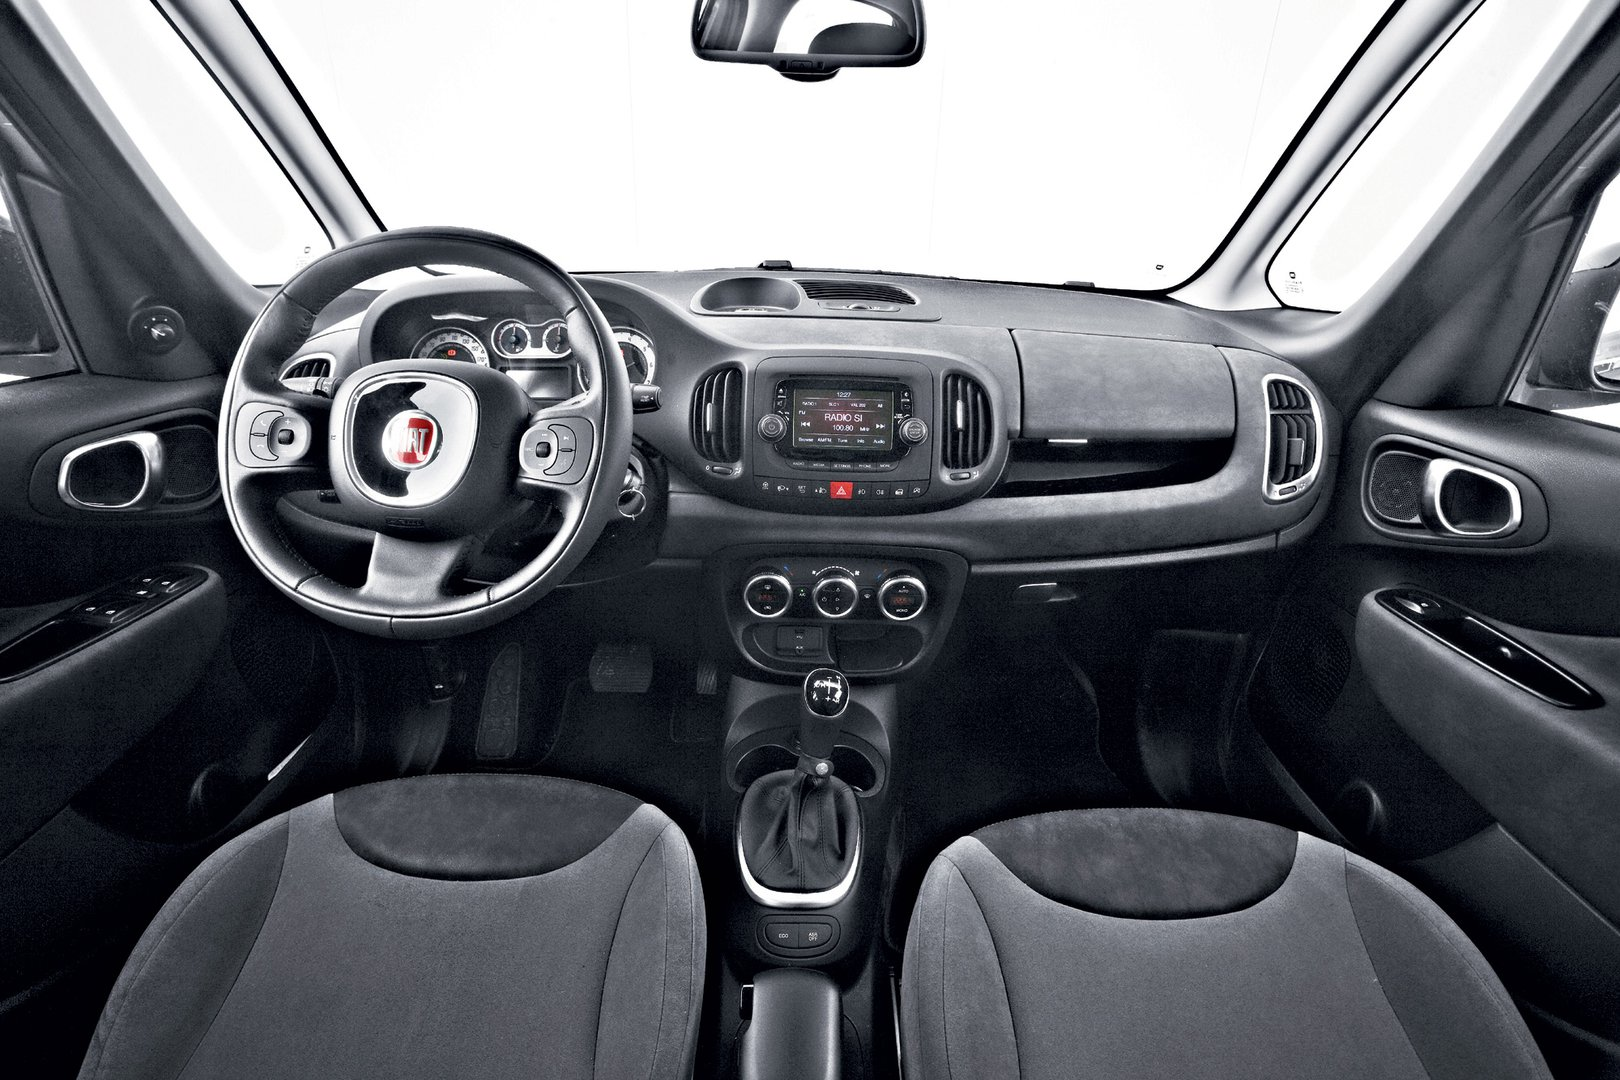 fiat img road by test trekking ben review lewis